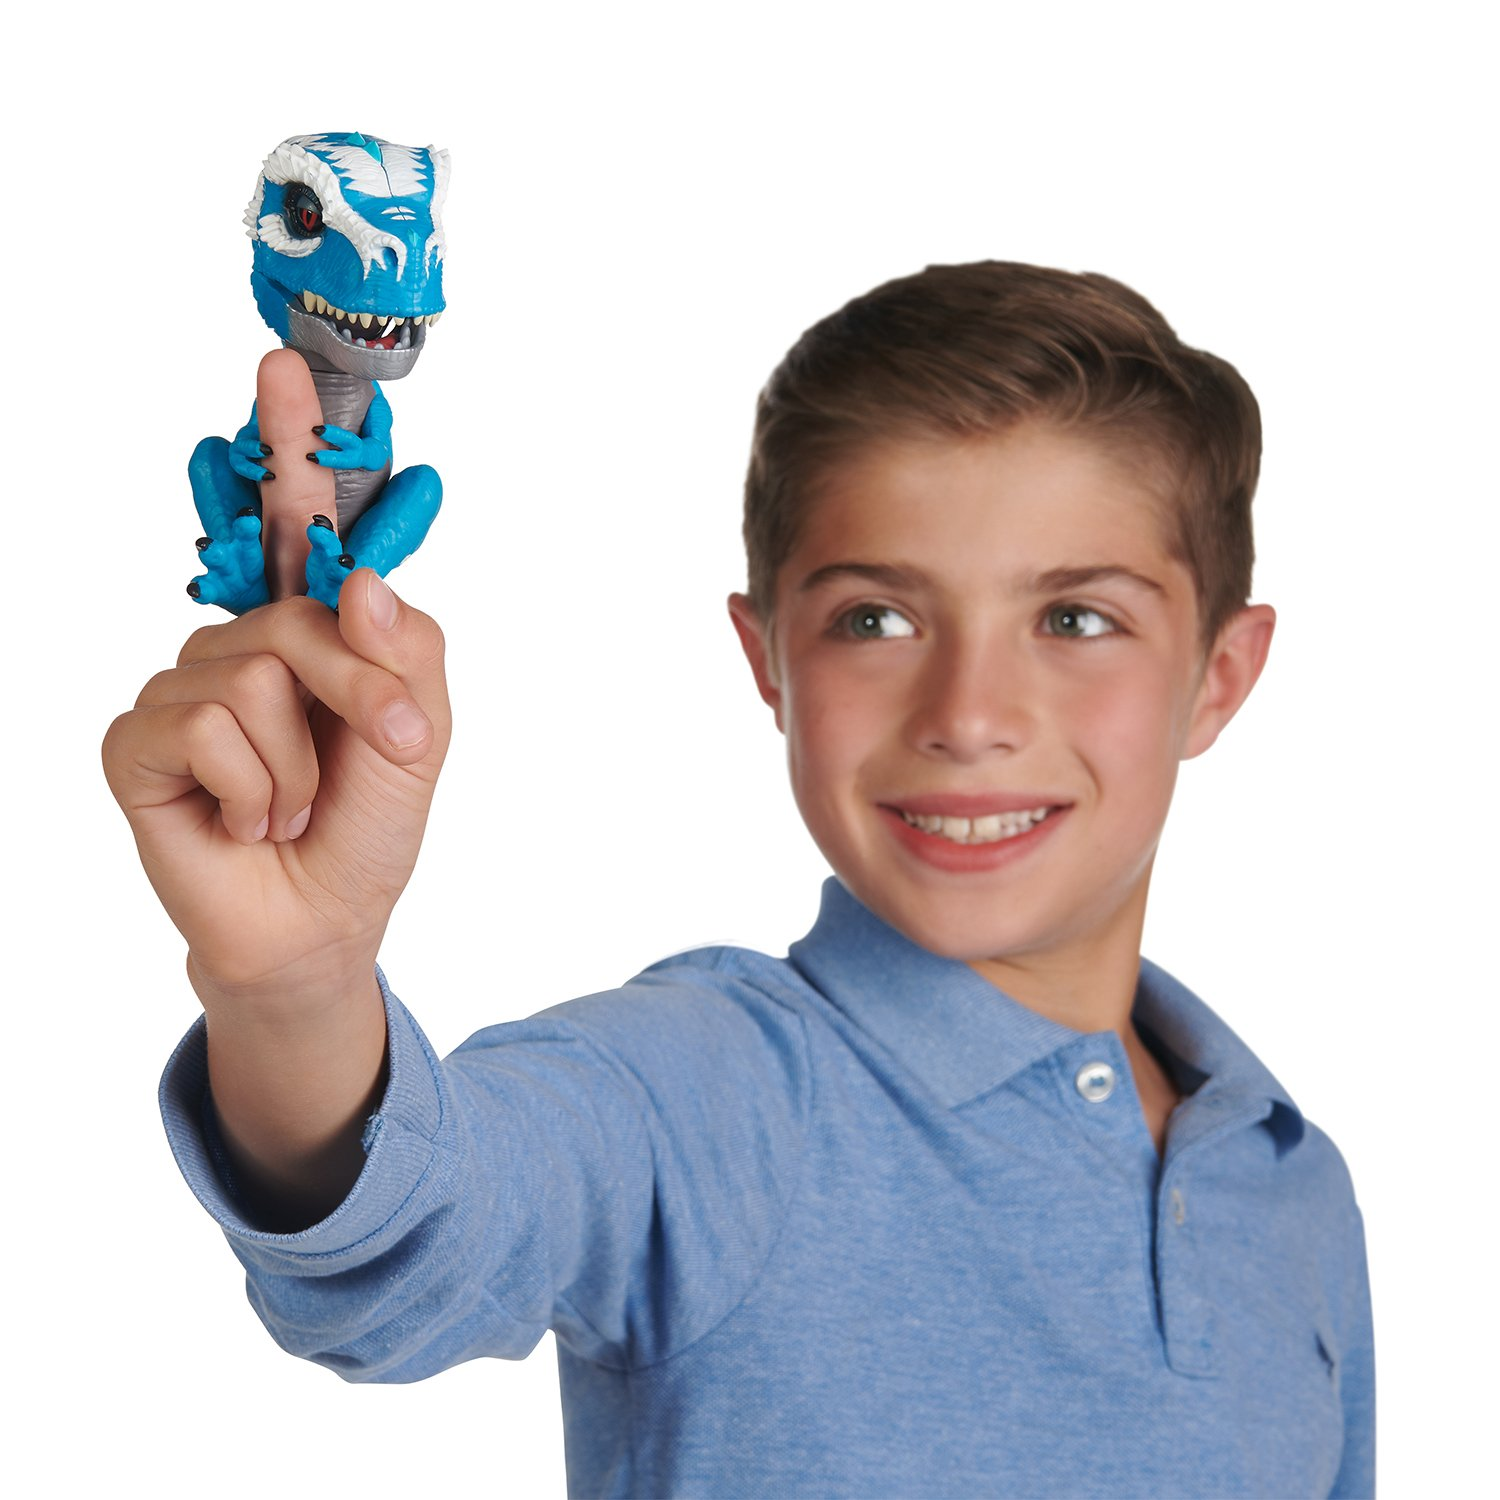 WowWee Untamed T-Rex by Fingerlings Ironjaw (Blue) -Interactive Collectible Dinosaur by WowWee (Image #6)